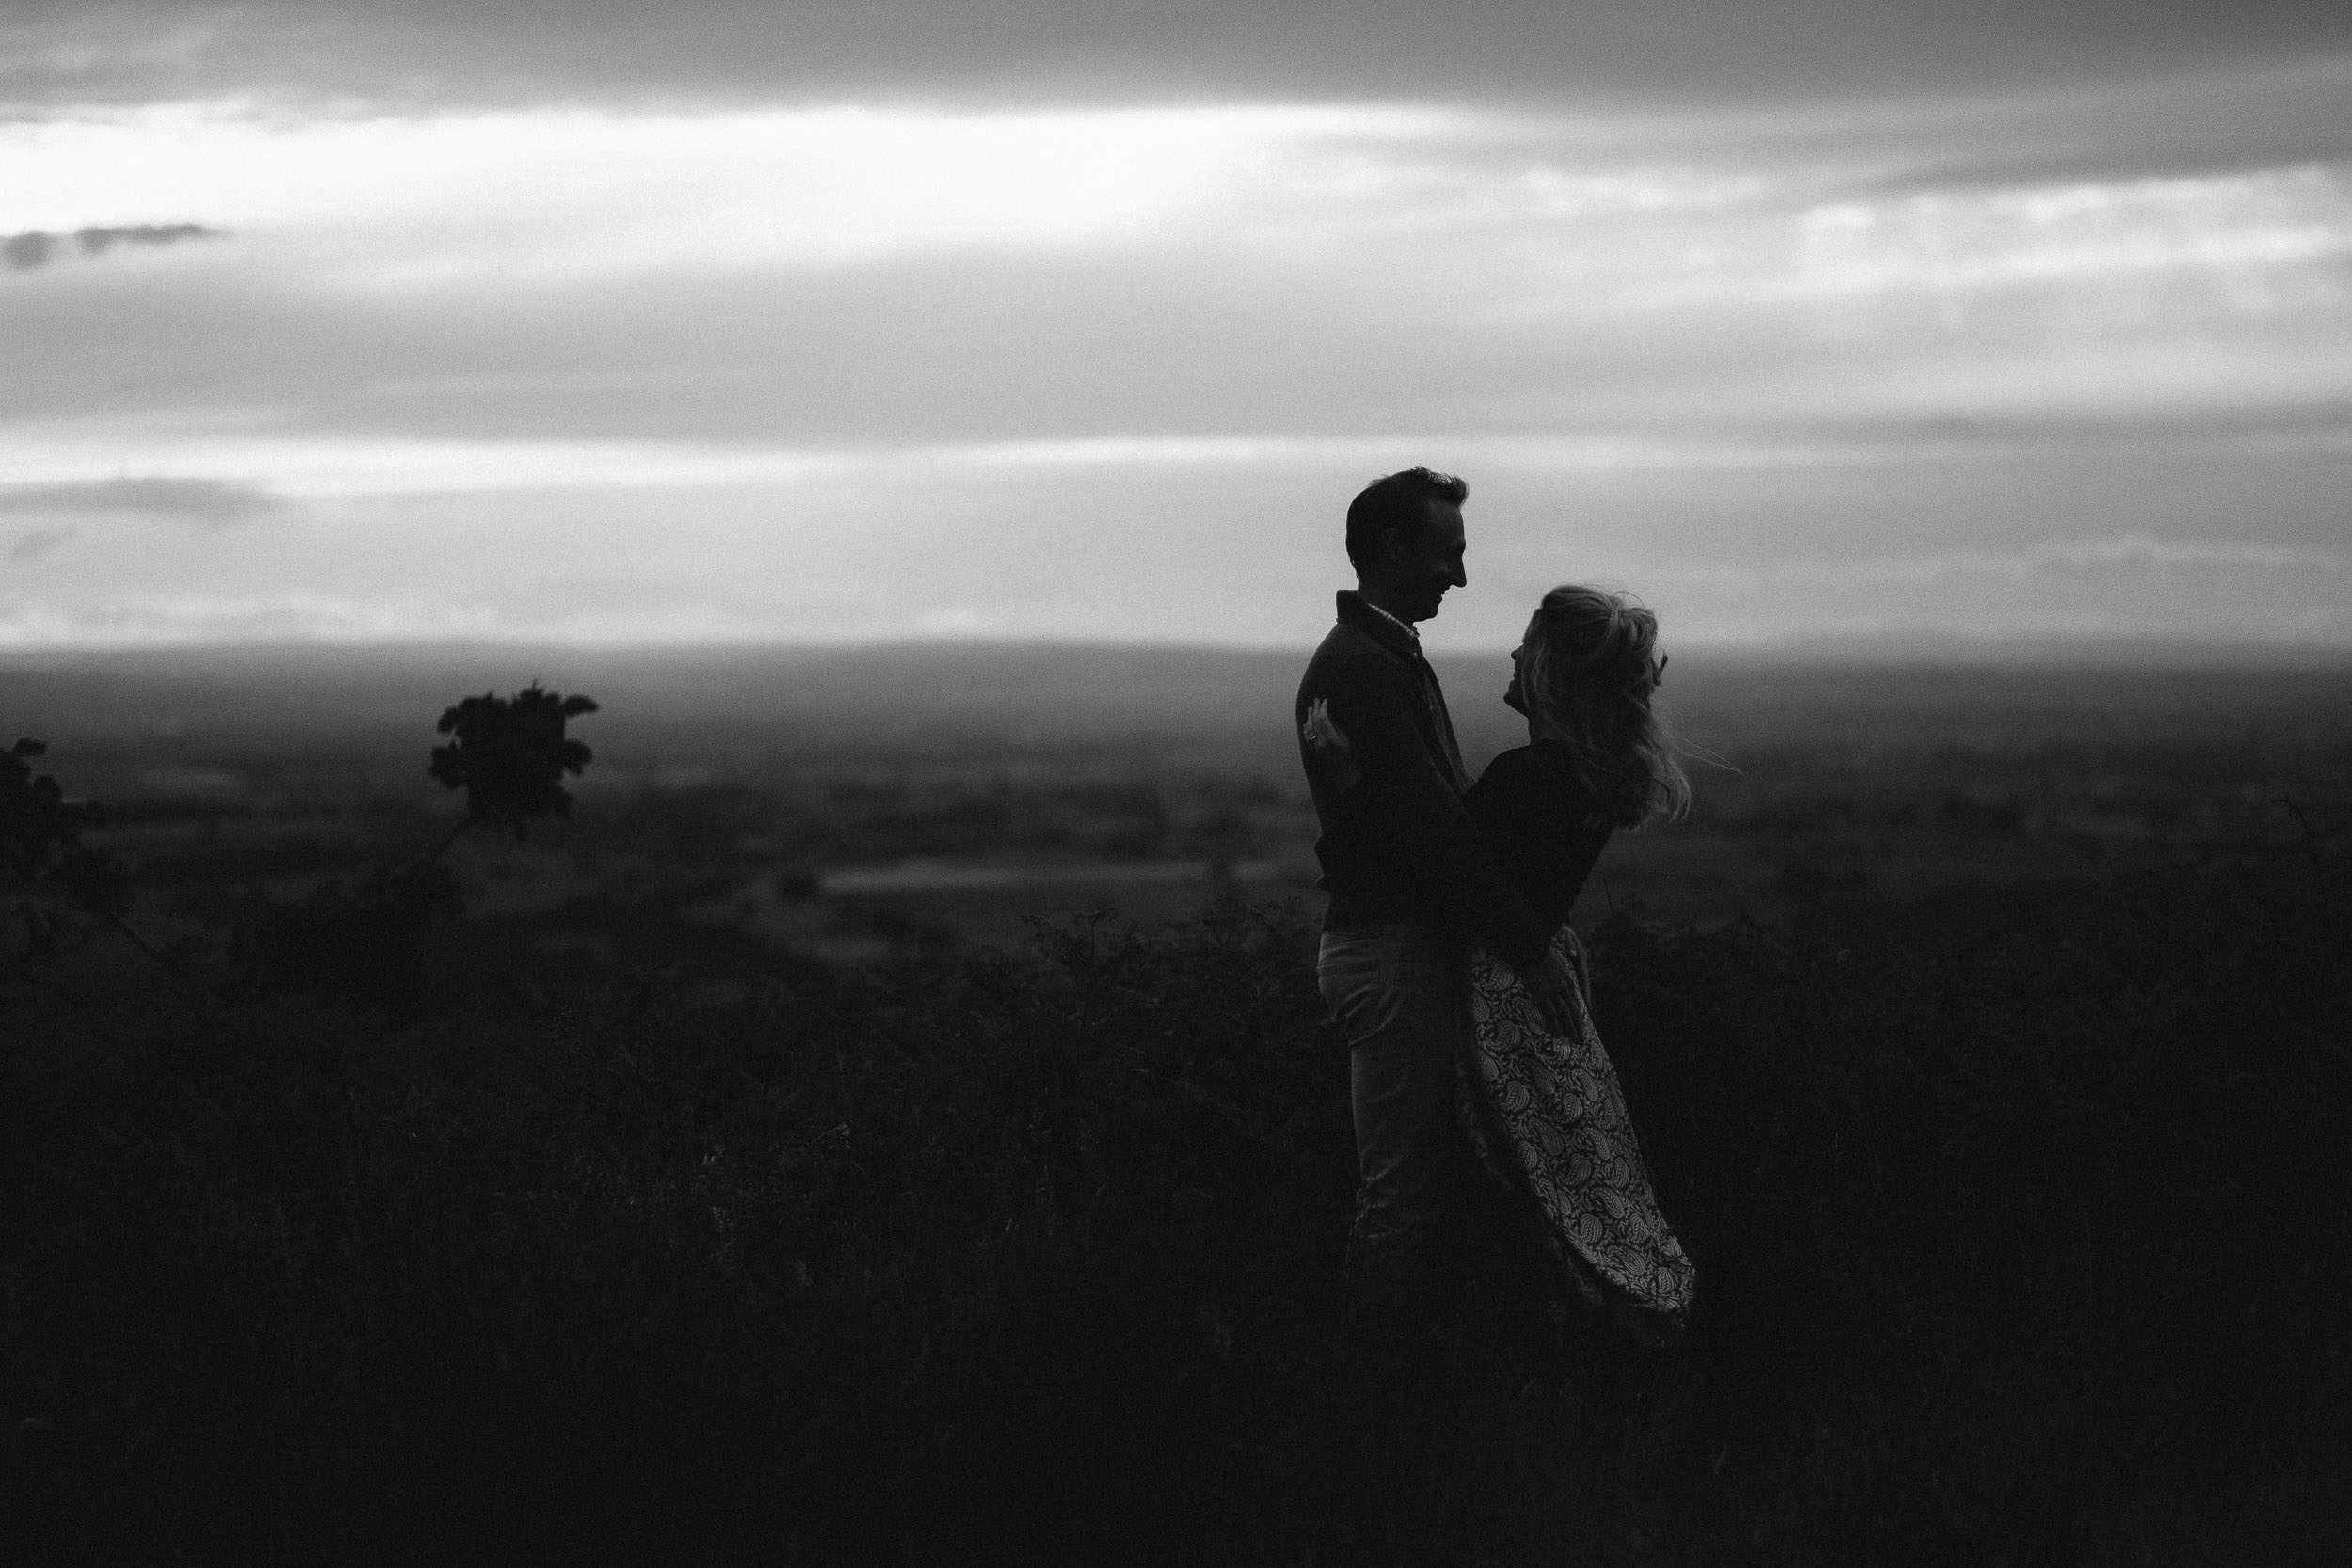 A black and white photo of an engaged couple holding each other with a dramatic sky behind them